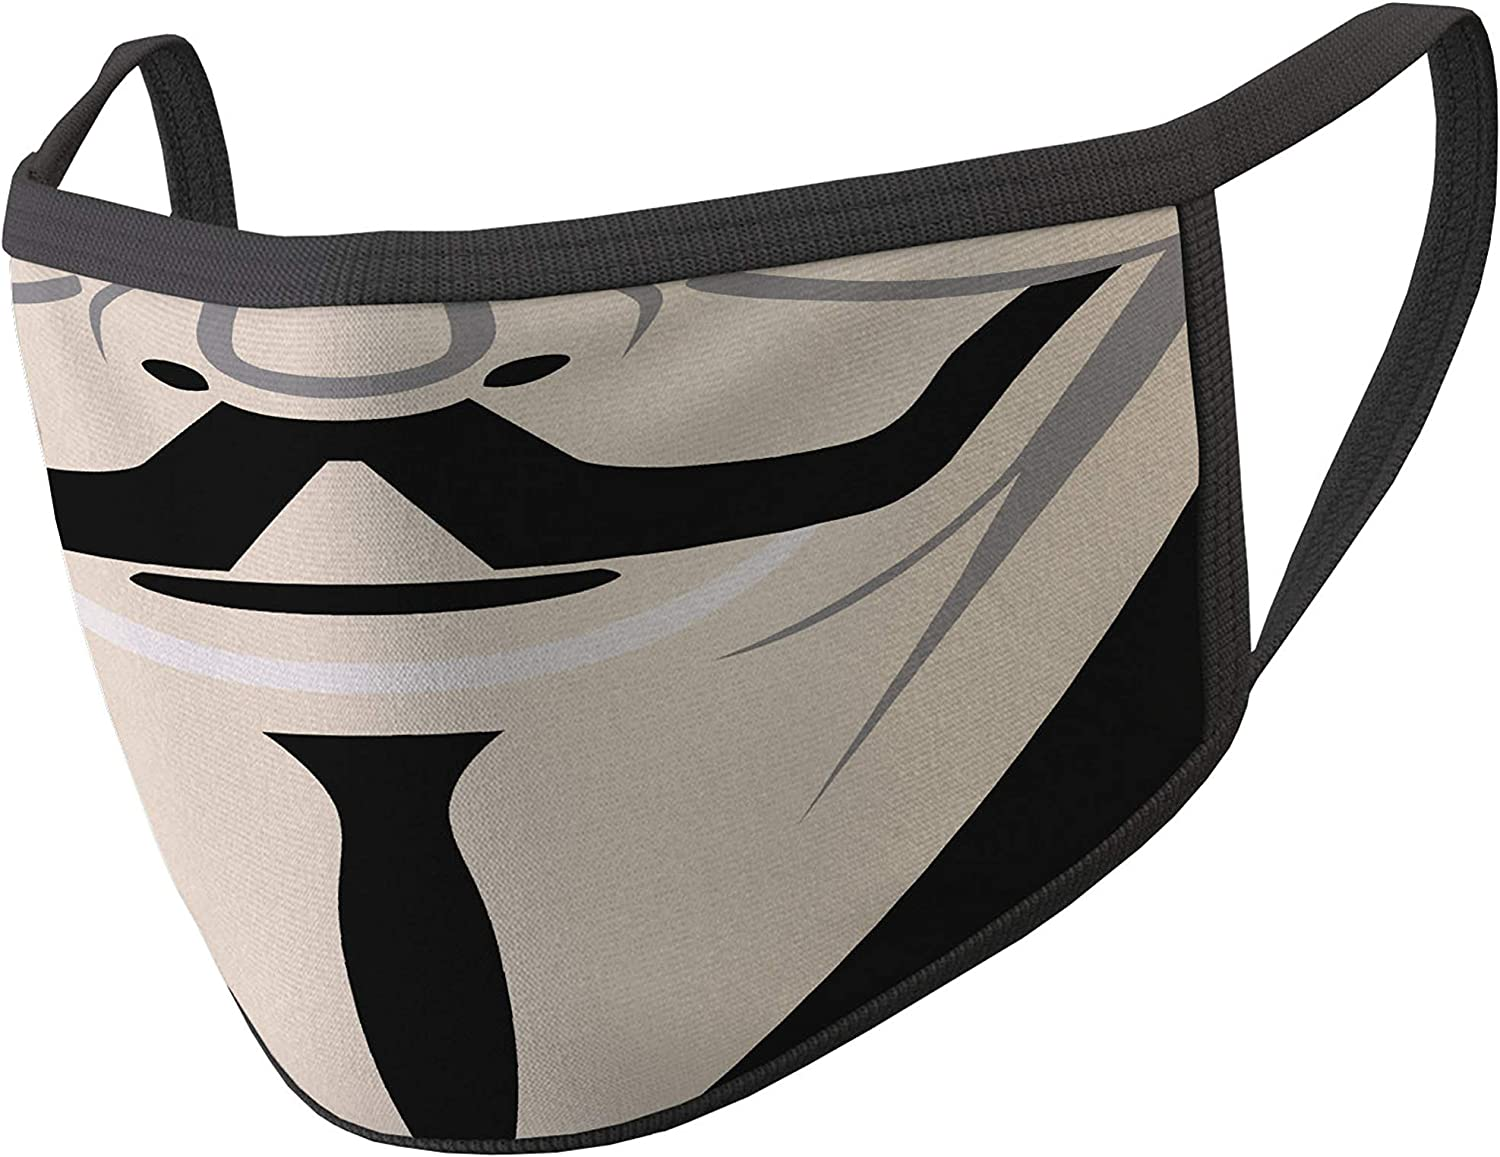 Copytec Mask Anonymous Nameless Group Netculture Hacktivism Guy Fawkes #34815